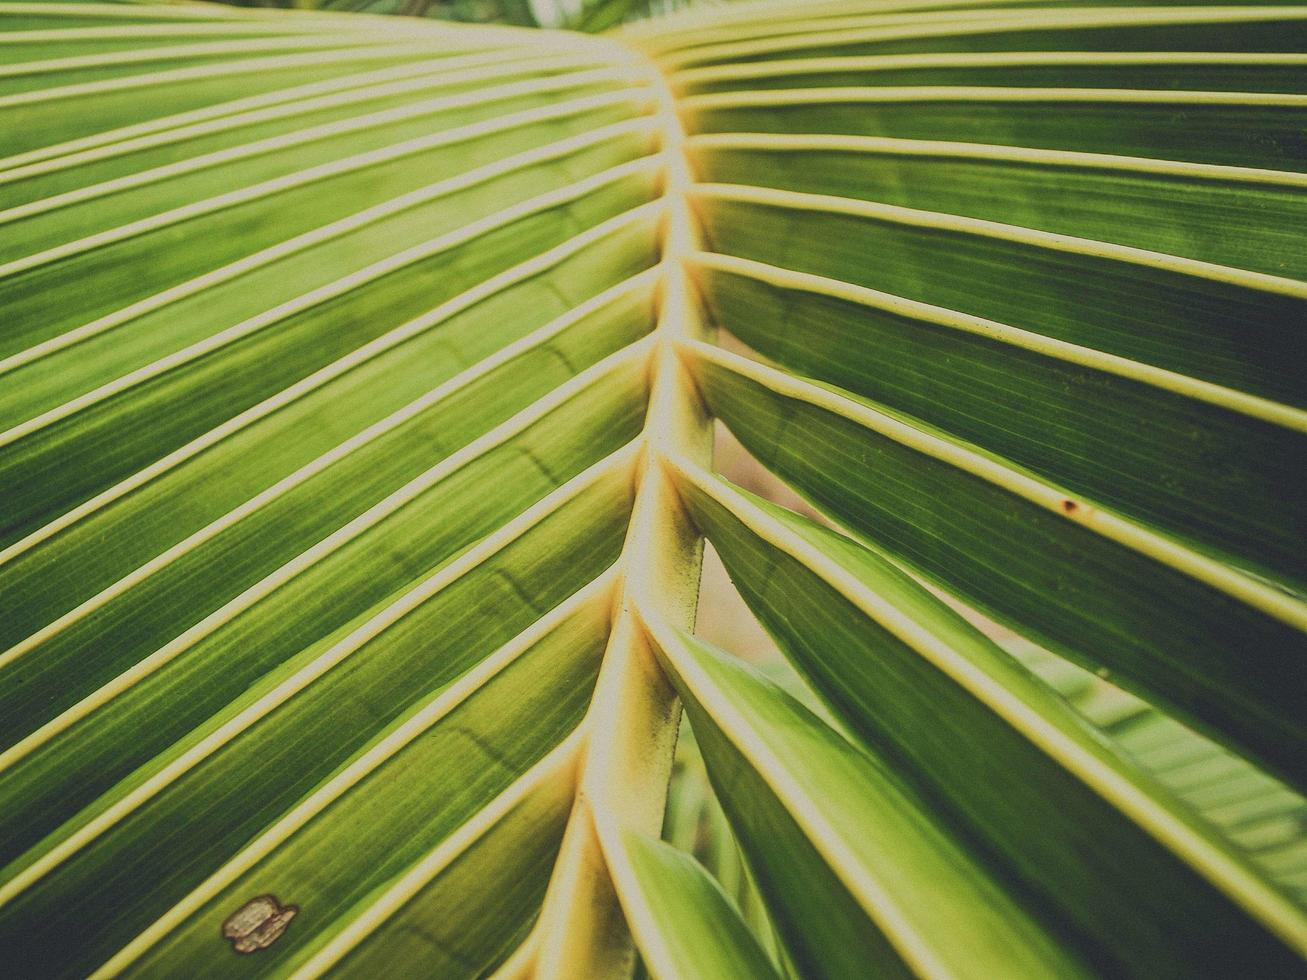 Natural coconut leaves close-up photo